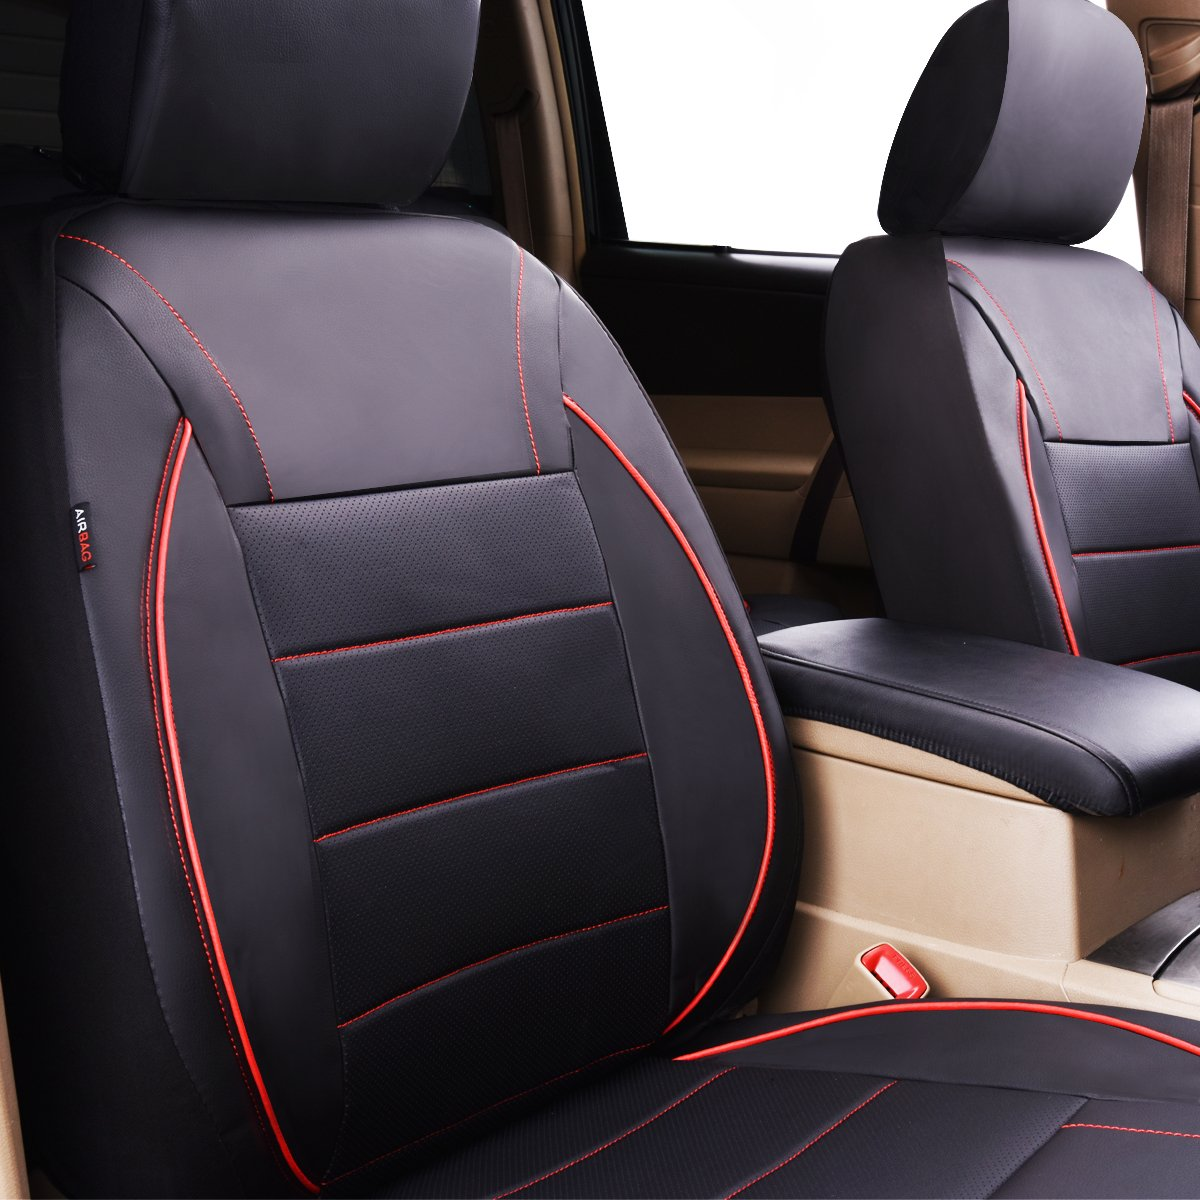 CAR PASS Universal FIT Piping Leather Car Seat Cover 11PCS, Black and Beige for suvs,Van,Trucks,Airbag Compatible,Inside Zipper Design and Reserved Opening Holes